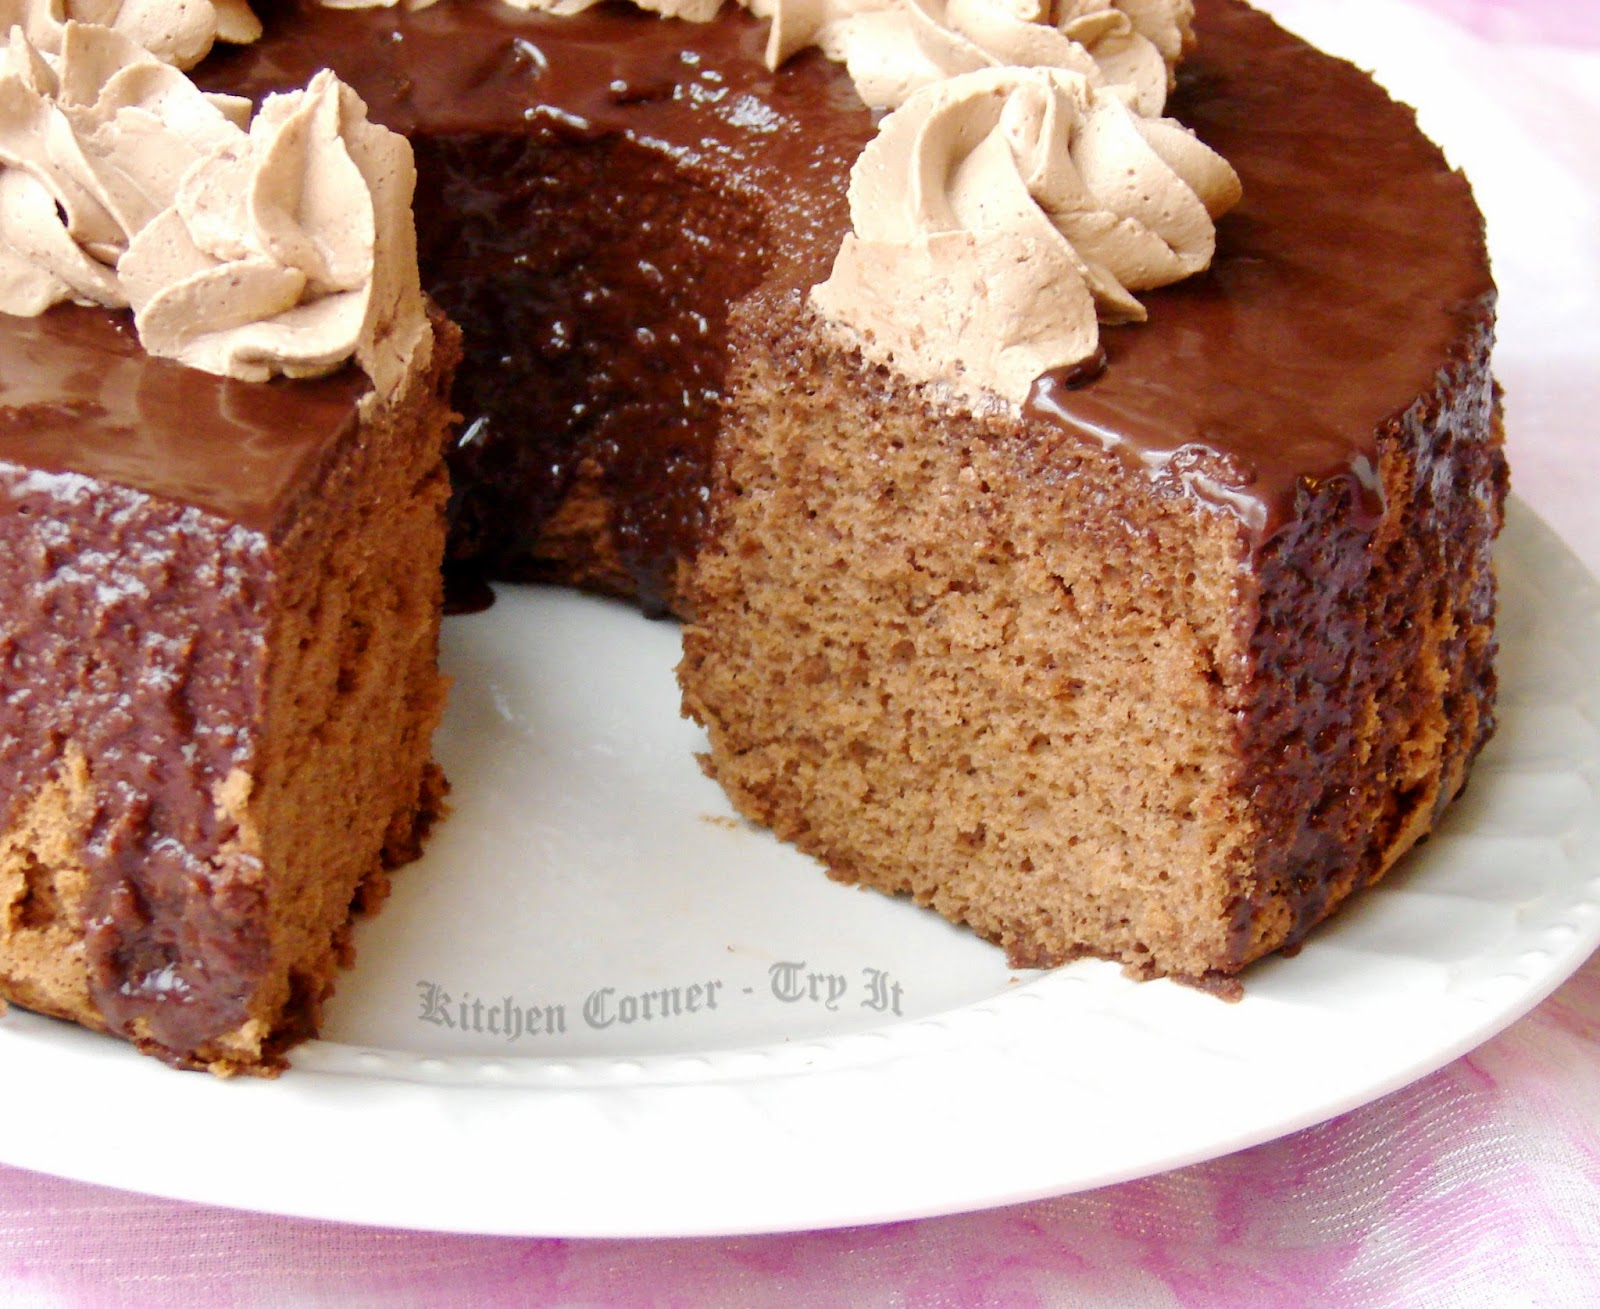 Kitchen corner try it chocolate chiffon cake for Living room 5 minute chocolate cake